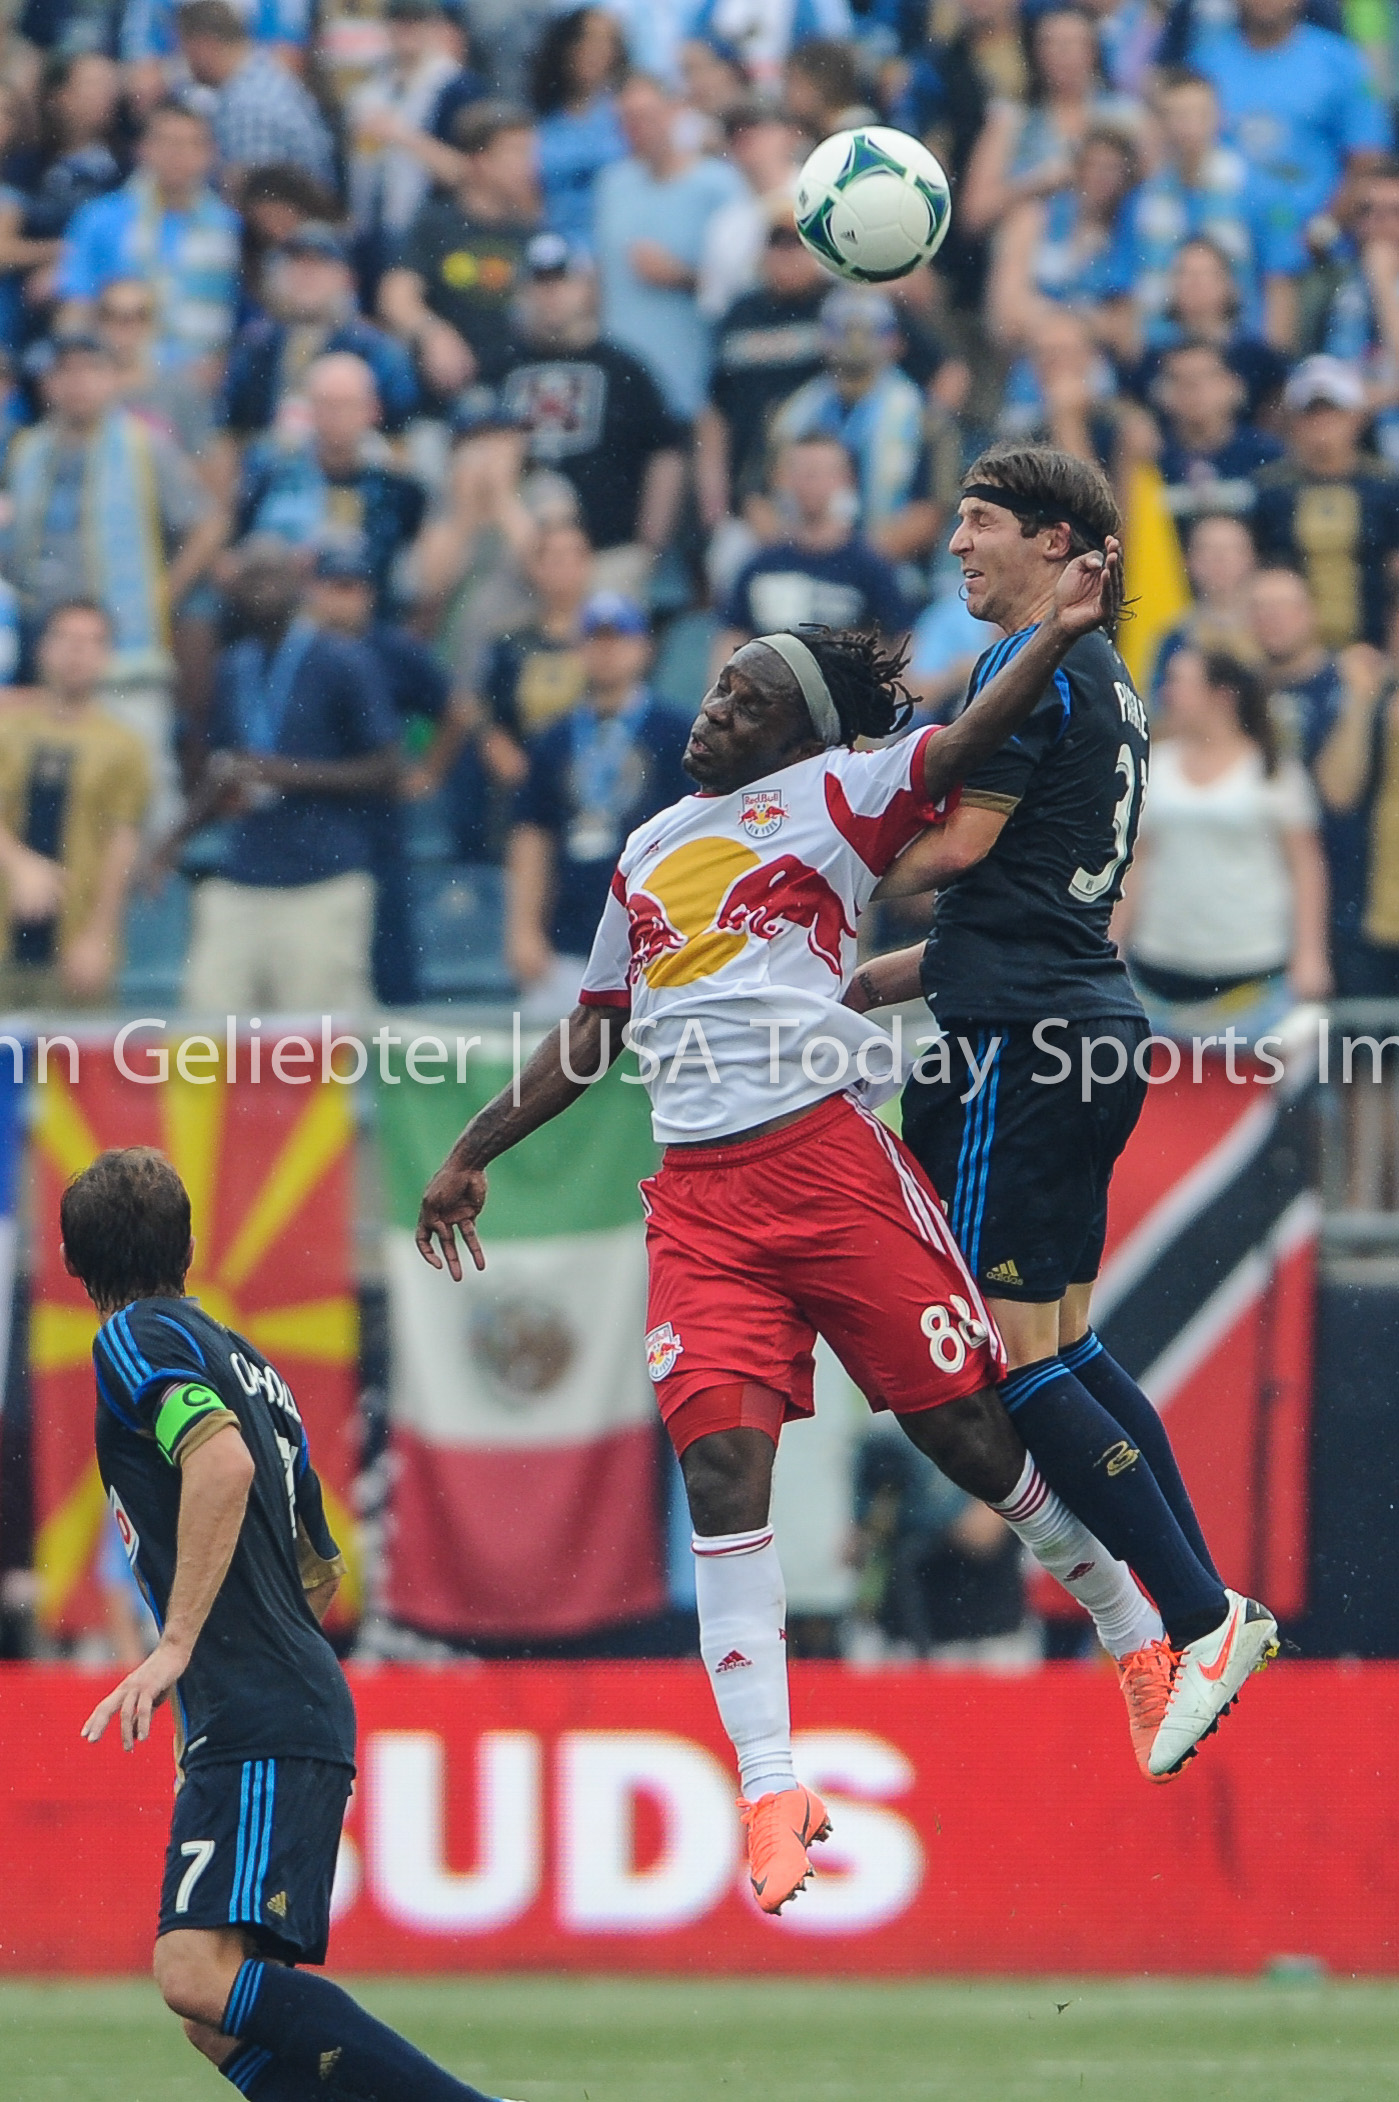 Redbulls_Union_June_23_2013_JAG0729.jpg